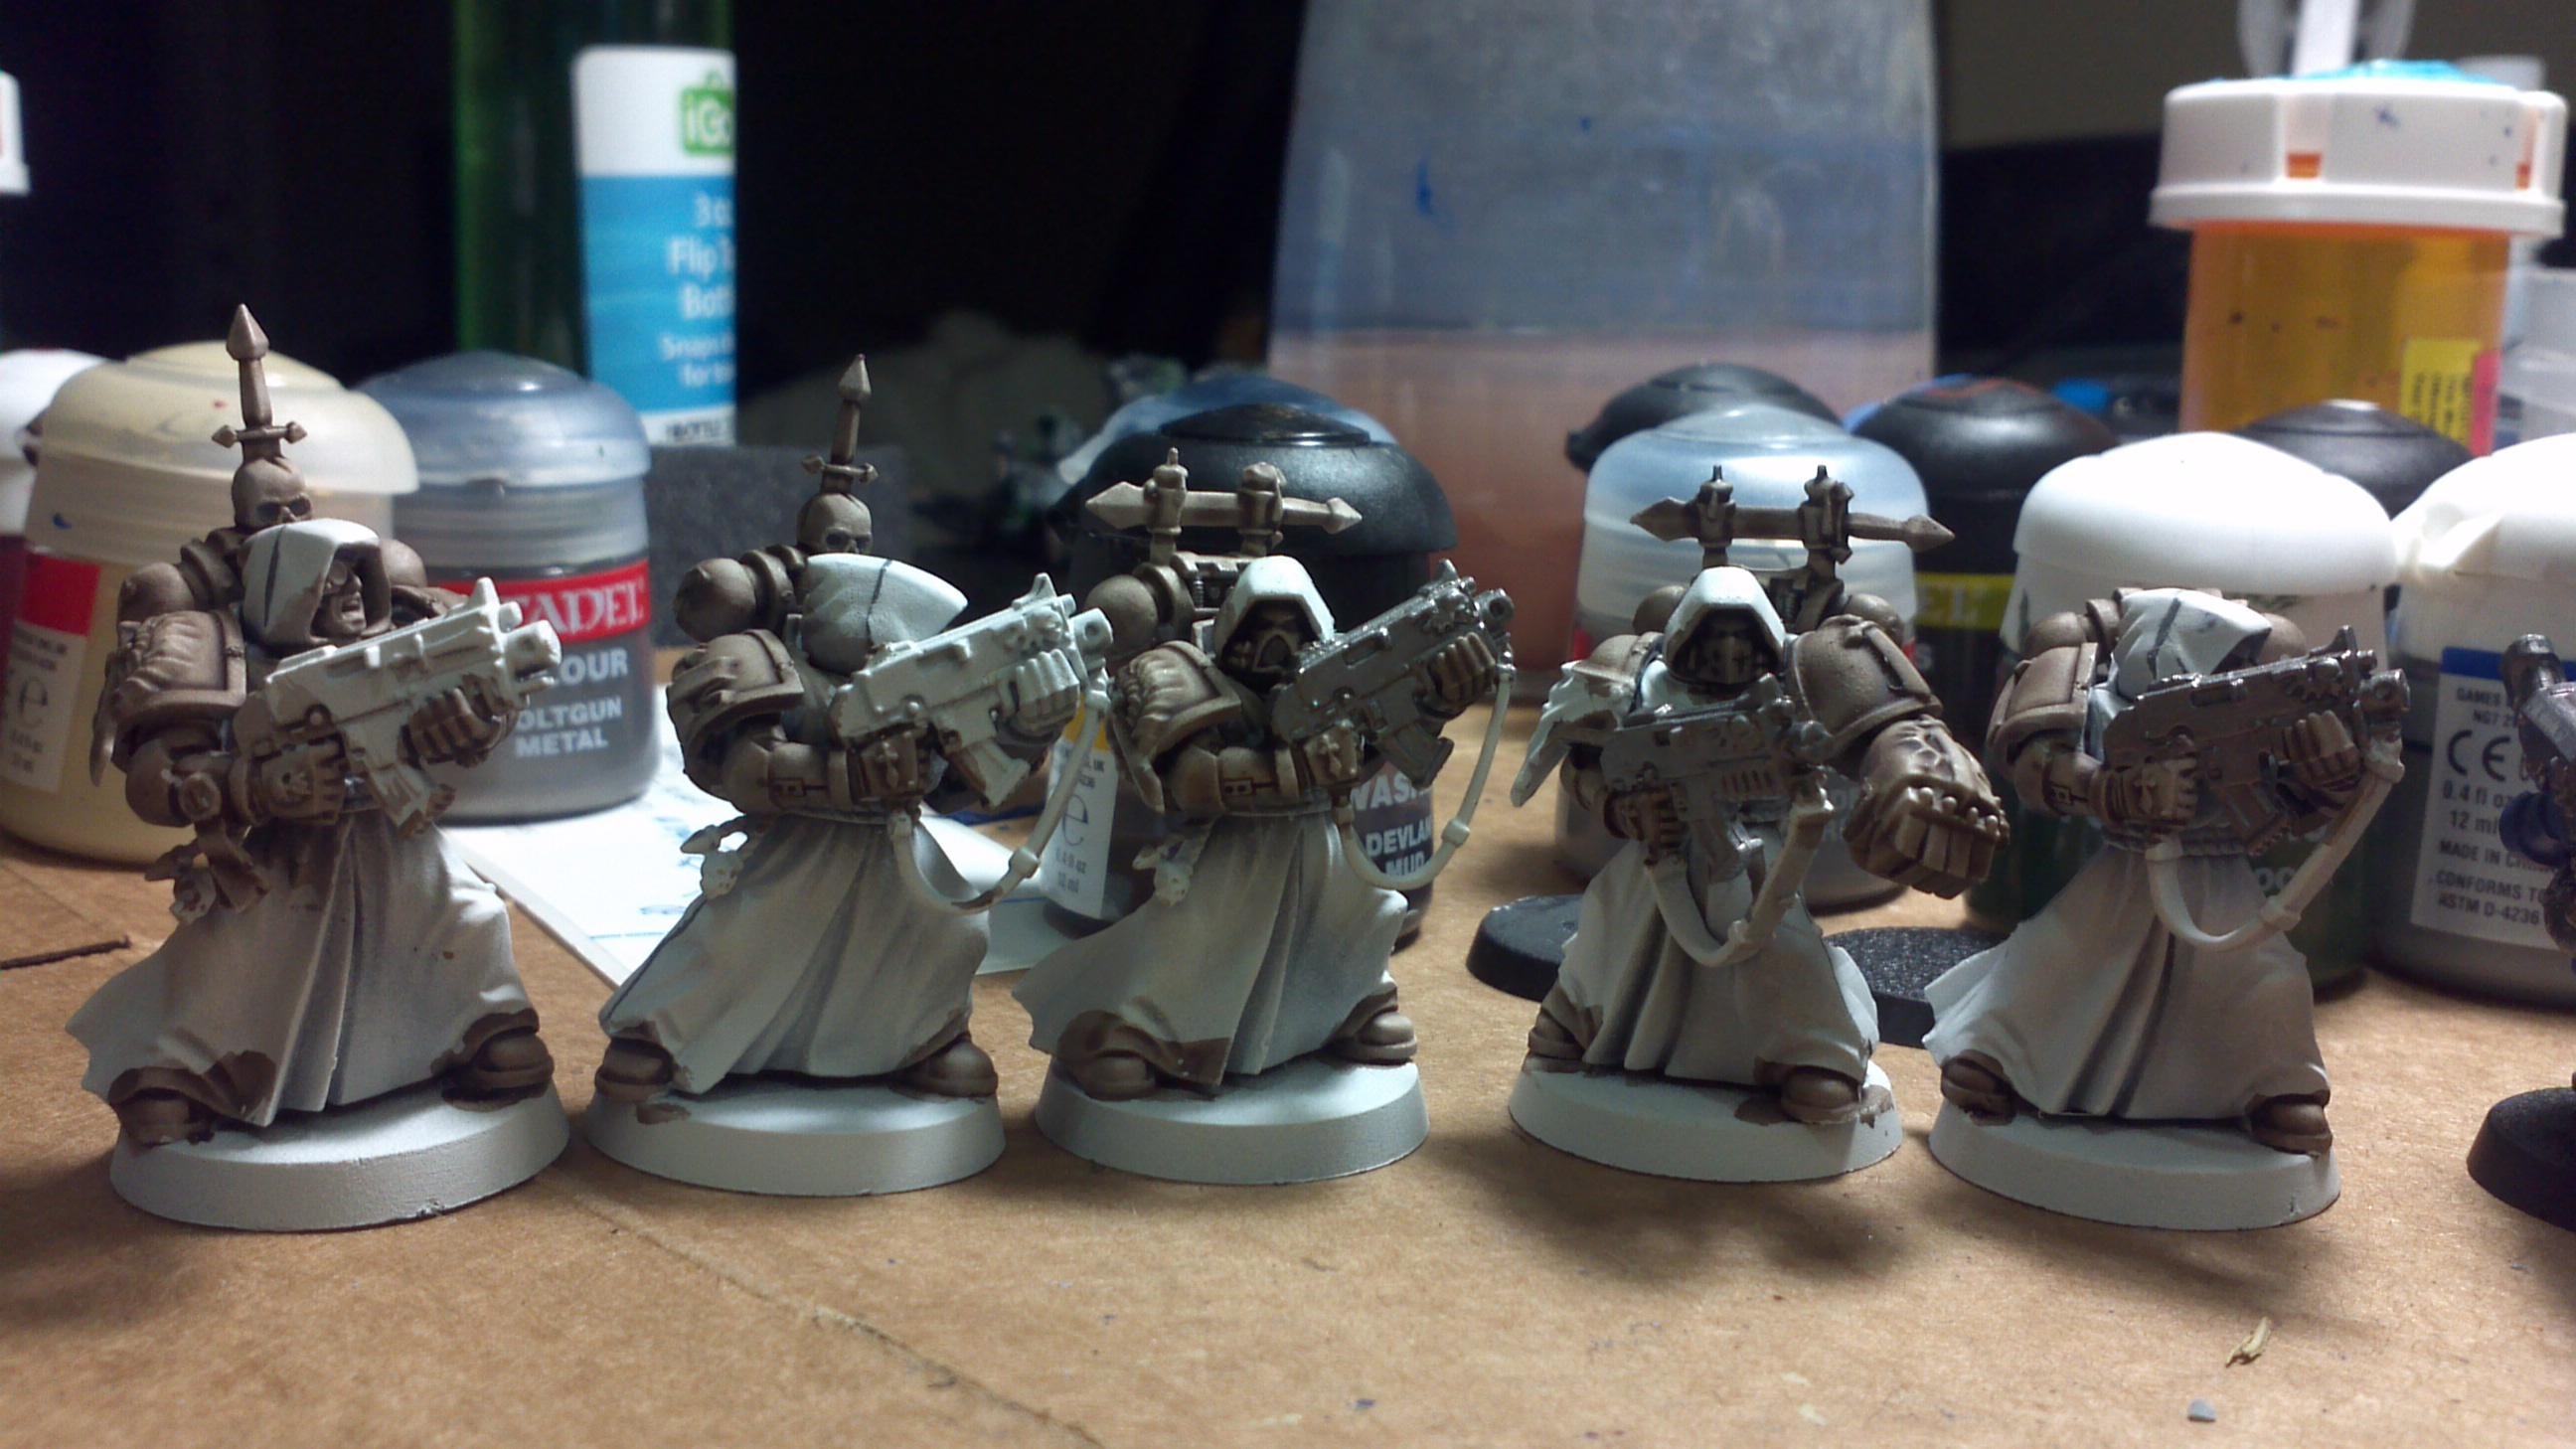 Another group of Sternguard also being worked on